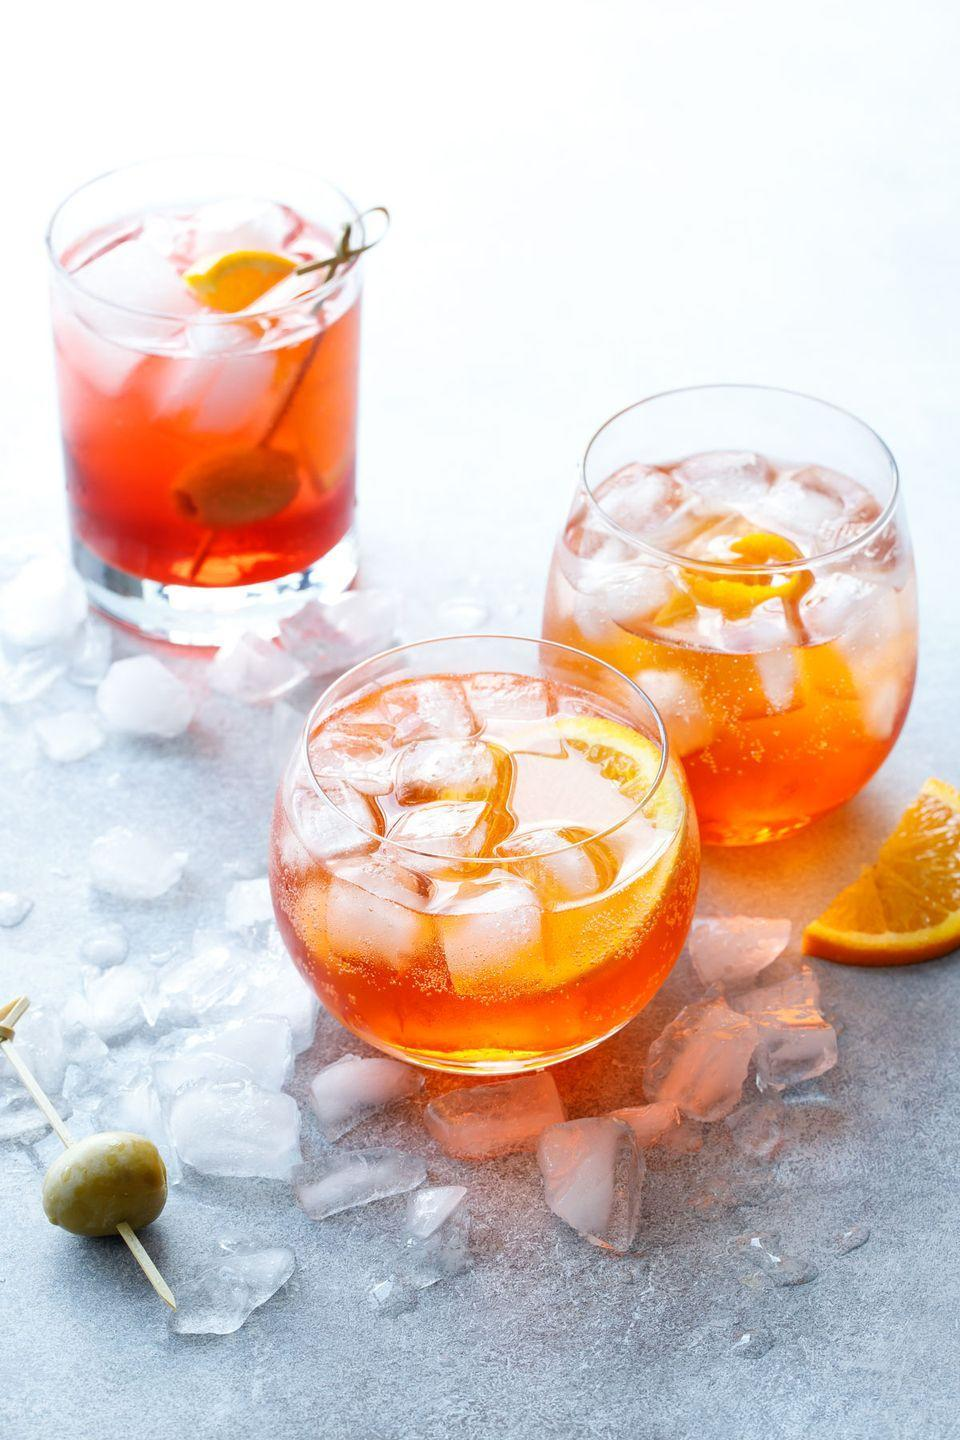 """<p>Among the coolest drinks to order this summer? Try the Aperol spritz, a bittersweet Italian favorite that's quickly becoming a classic stateside. </p><p>Get the recipe at <a href=""""https://www.loveandoliveoil.com/2018/07/classic-italian-spritz.html"""" rel=""""nofollow noopener"""" target=""""_blank"""" data-ylk=""""slk:Love & Olive Oil"""" class=""""link rapid-noclick-resp"""">Love & Olive Oil</a>. </p>"""